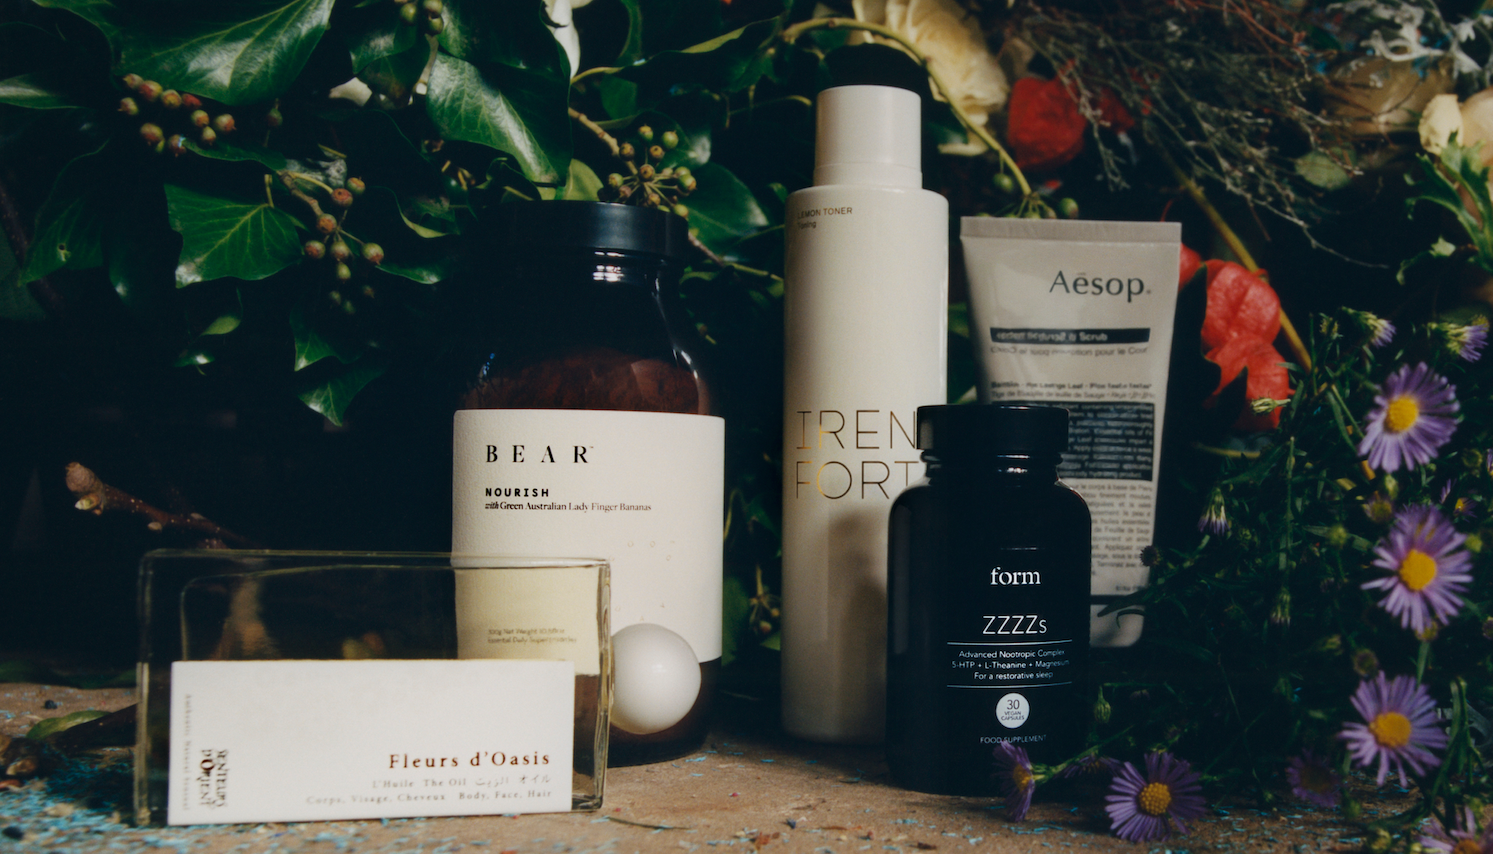 NET-A-PORTER Expands NET SUSTAIN Platform With Additional Fashion Brands and Includes Beauty for First Time